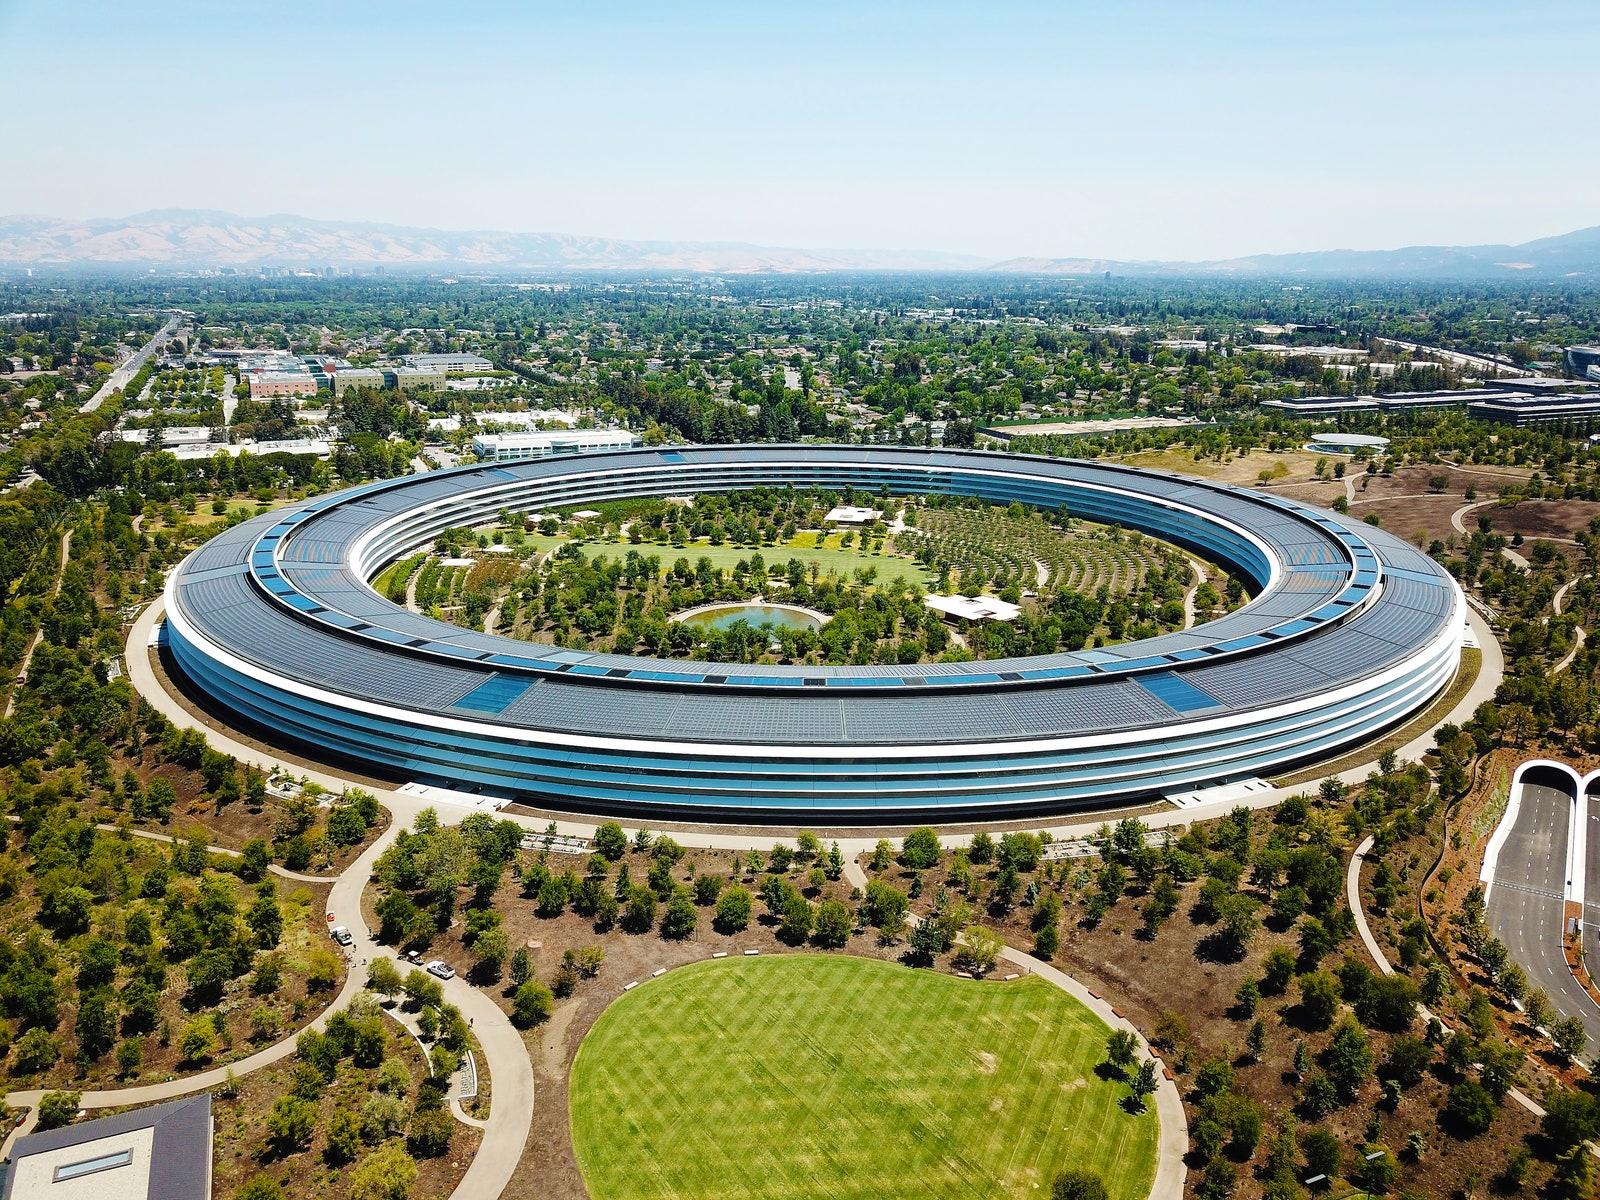 Apple Park | Source: Getty Images